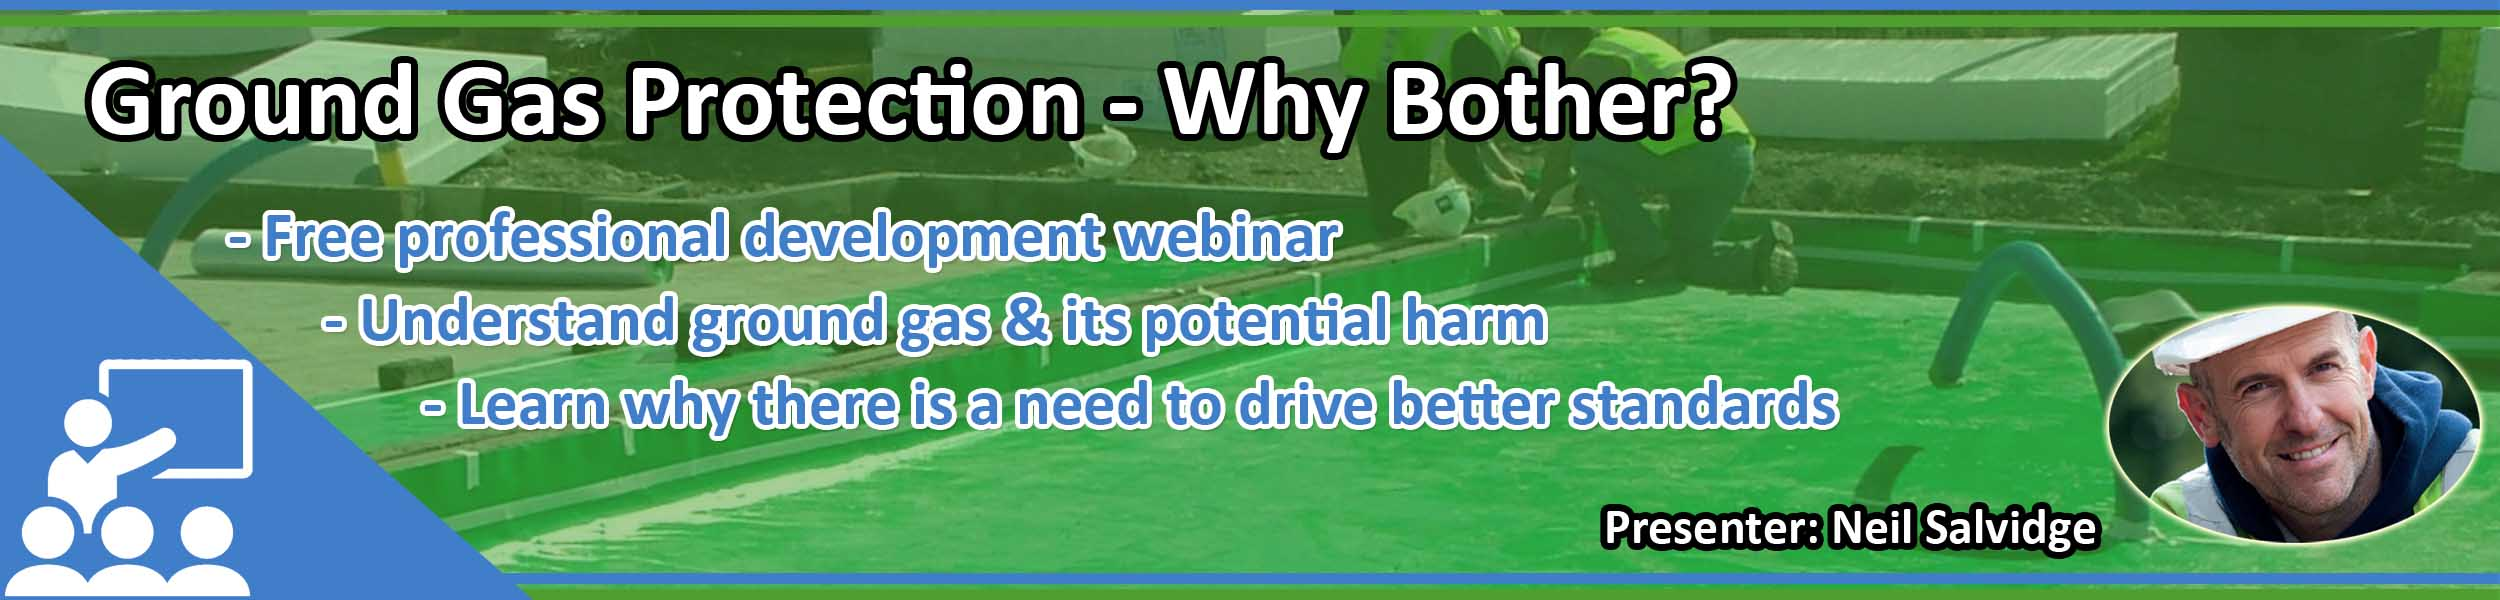 Webinar - Ground Gas Protection - Why Bother